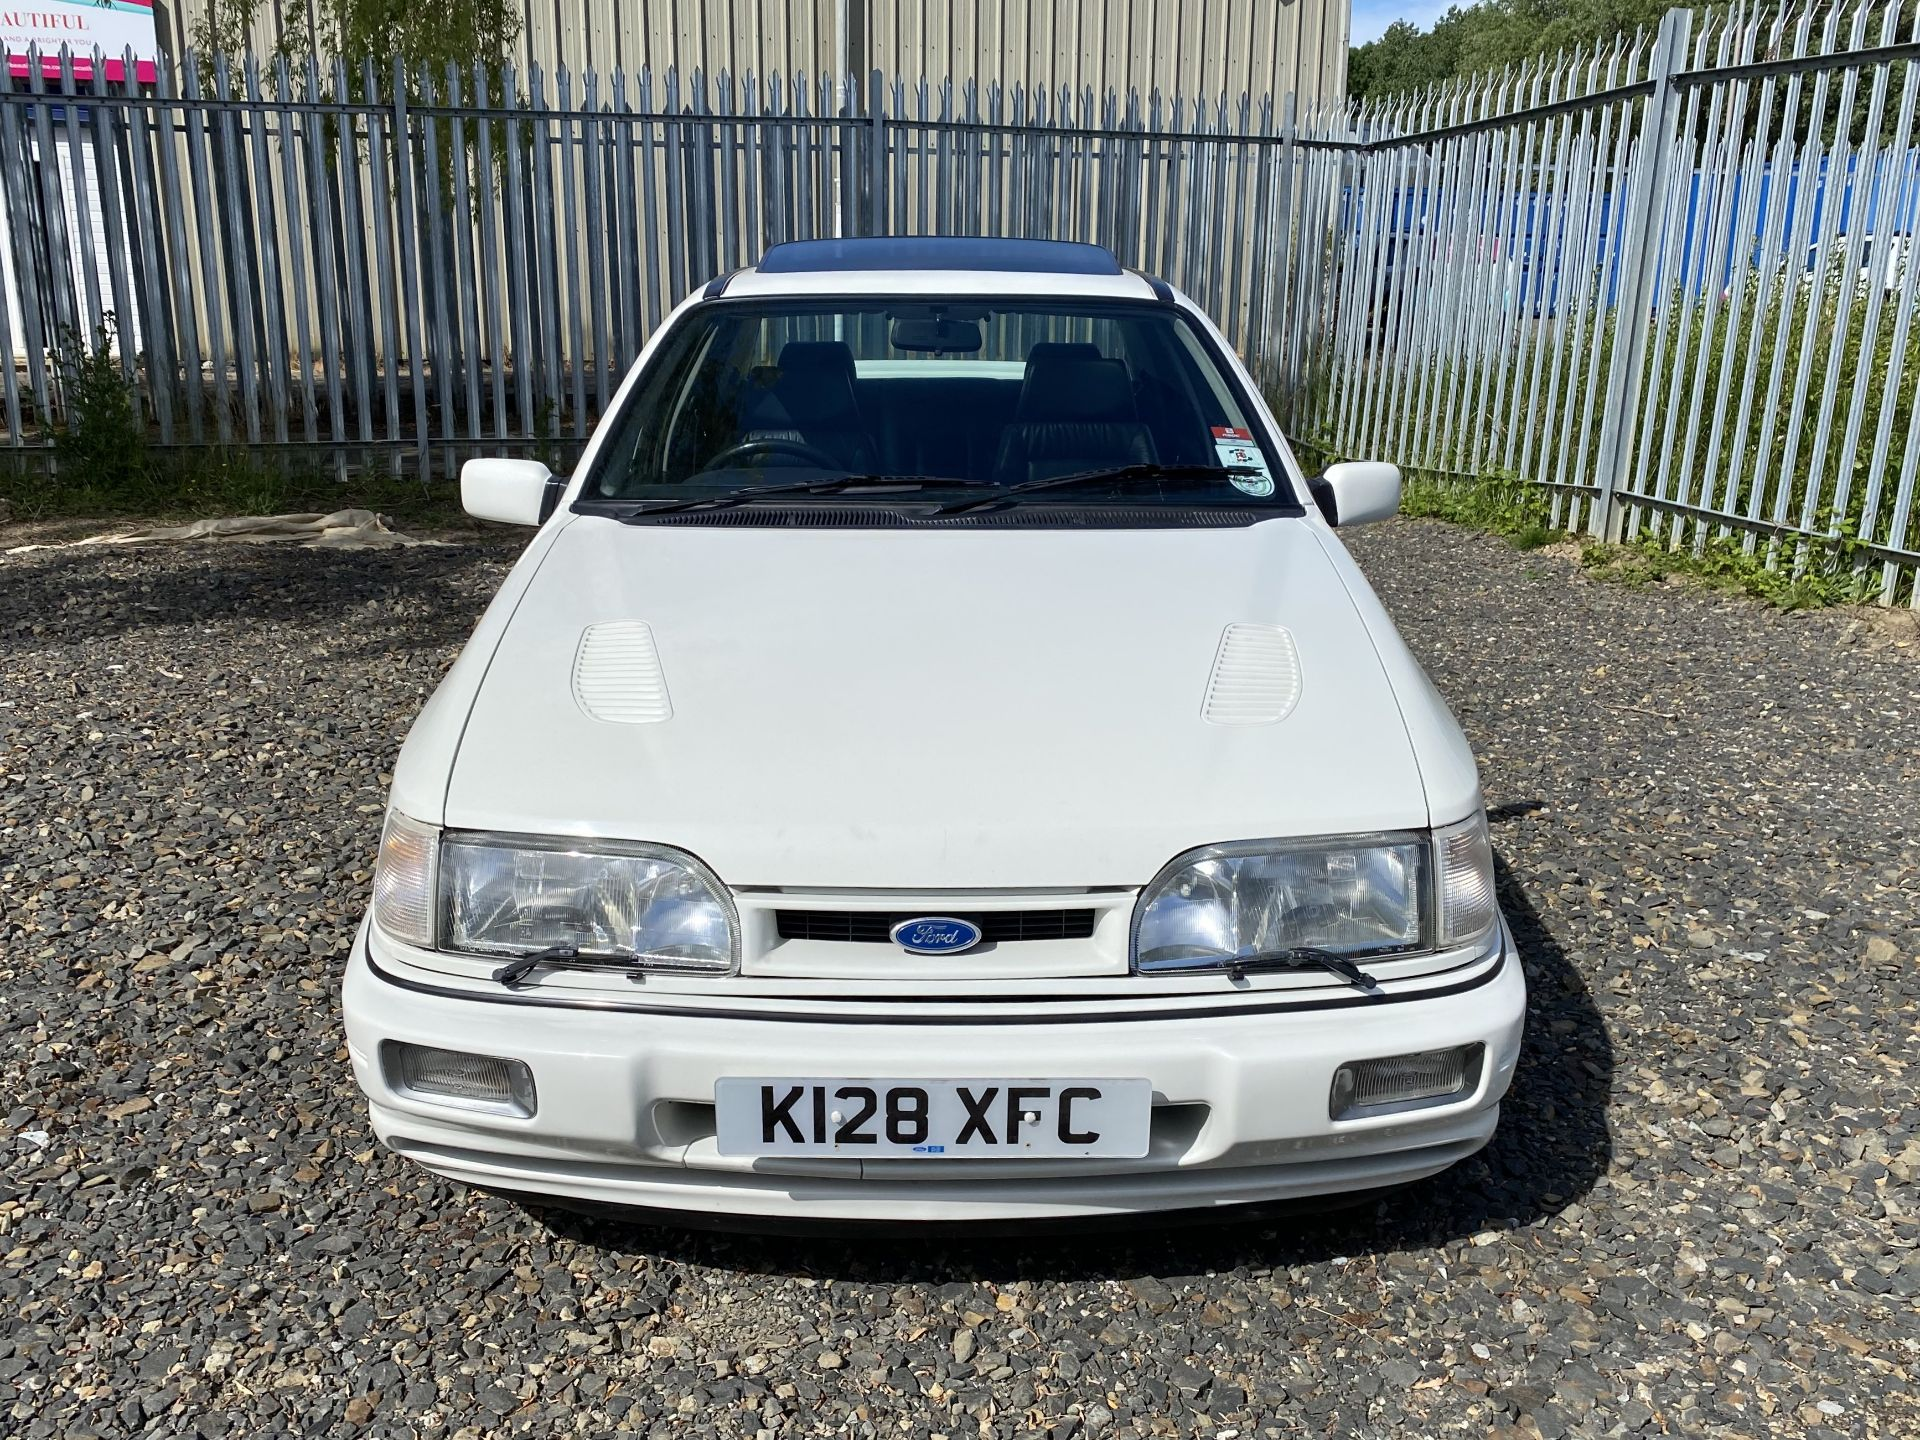 Ford Sierra Sapphire Cosworth 4x4 - Image 17 of 55